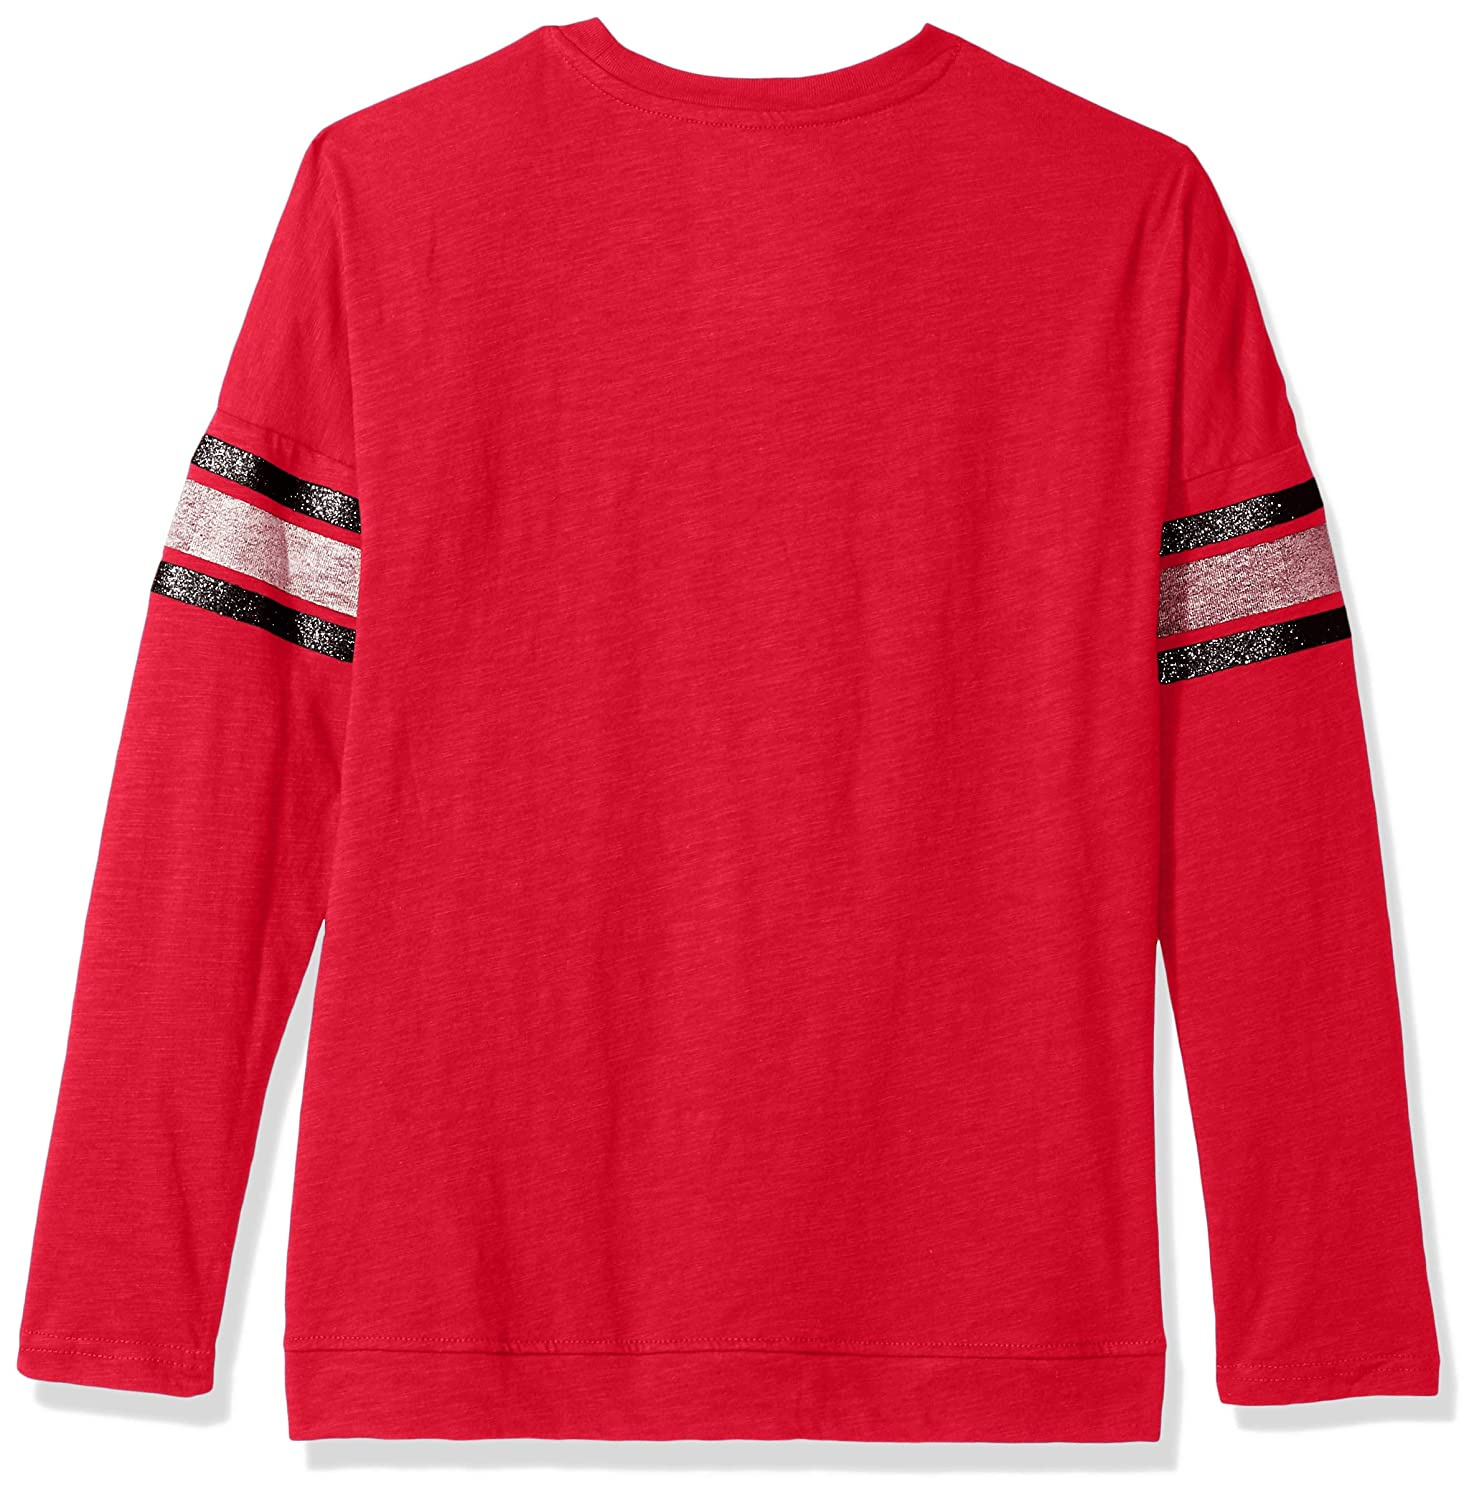 NBA by Outerstuff Girls Big Team Captain Long Sleeve Slub Tee